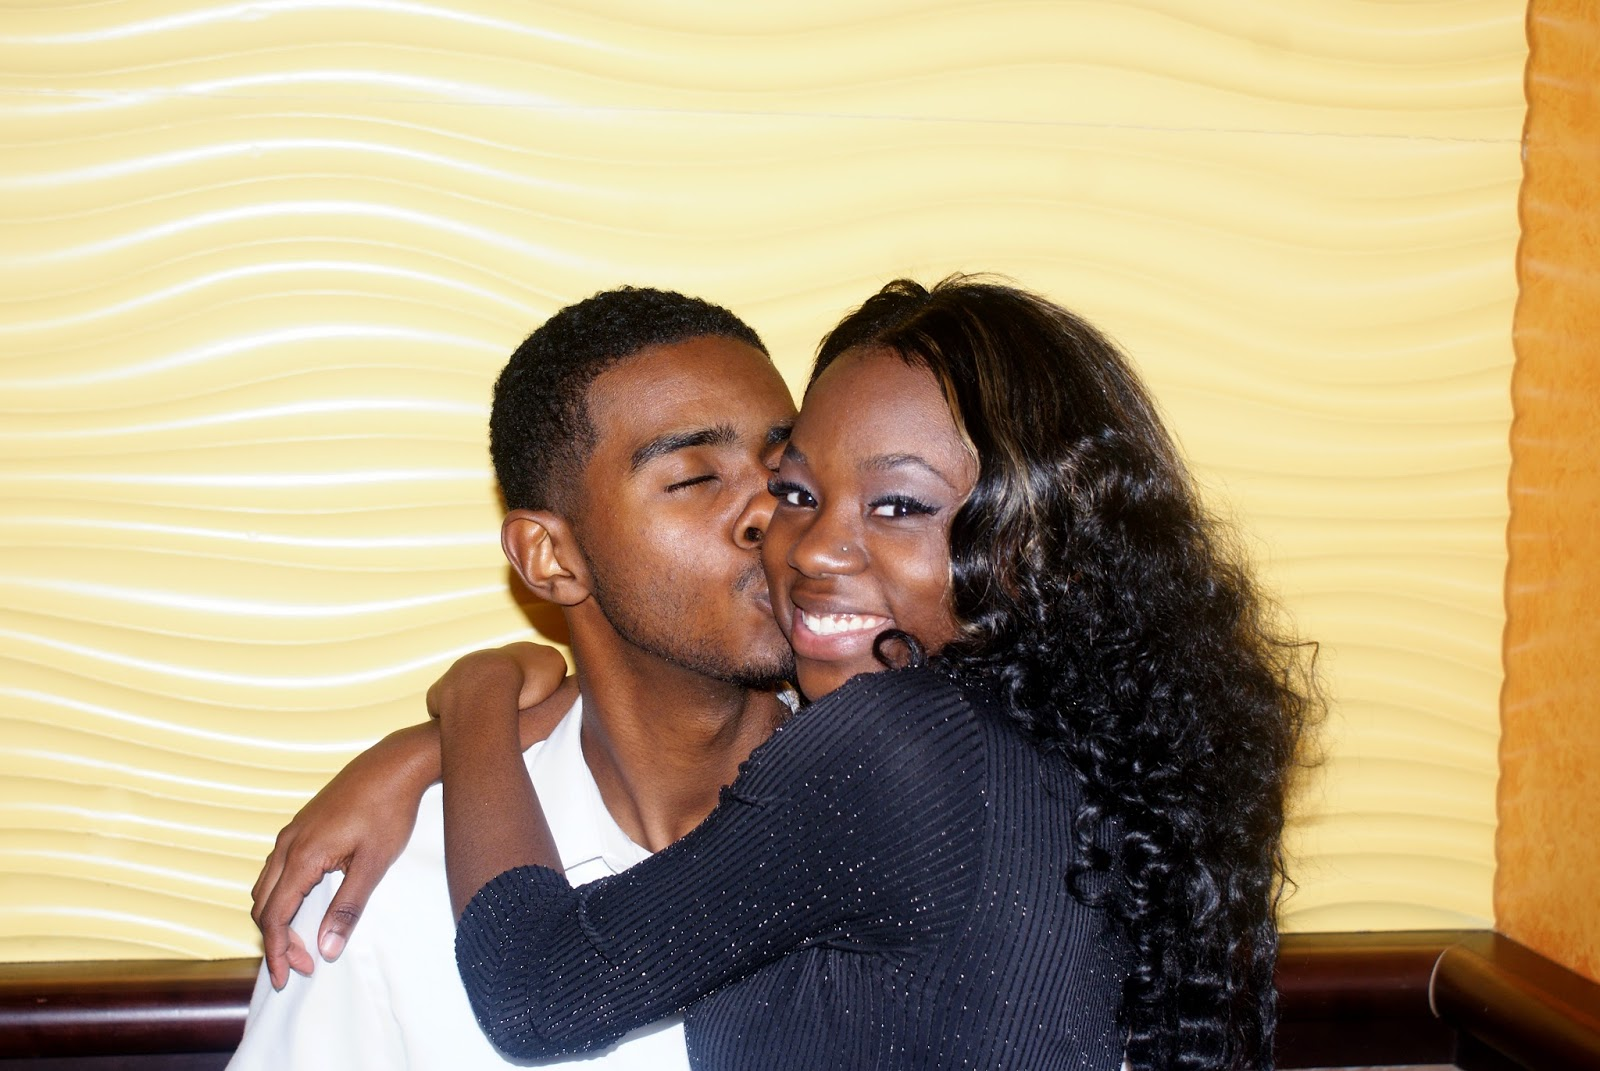 Image 2 of Danecia and Terrence Caldwell